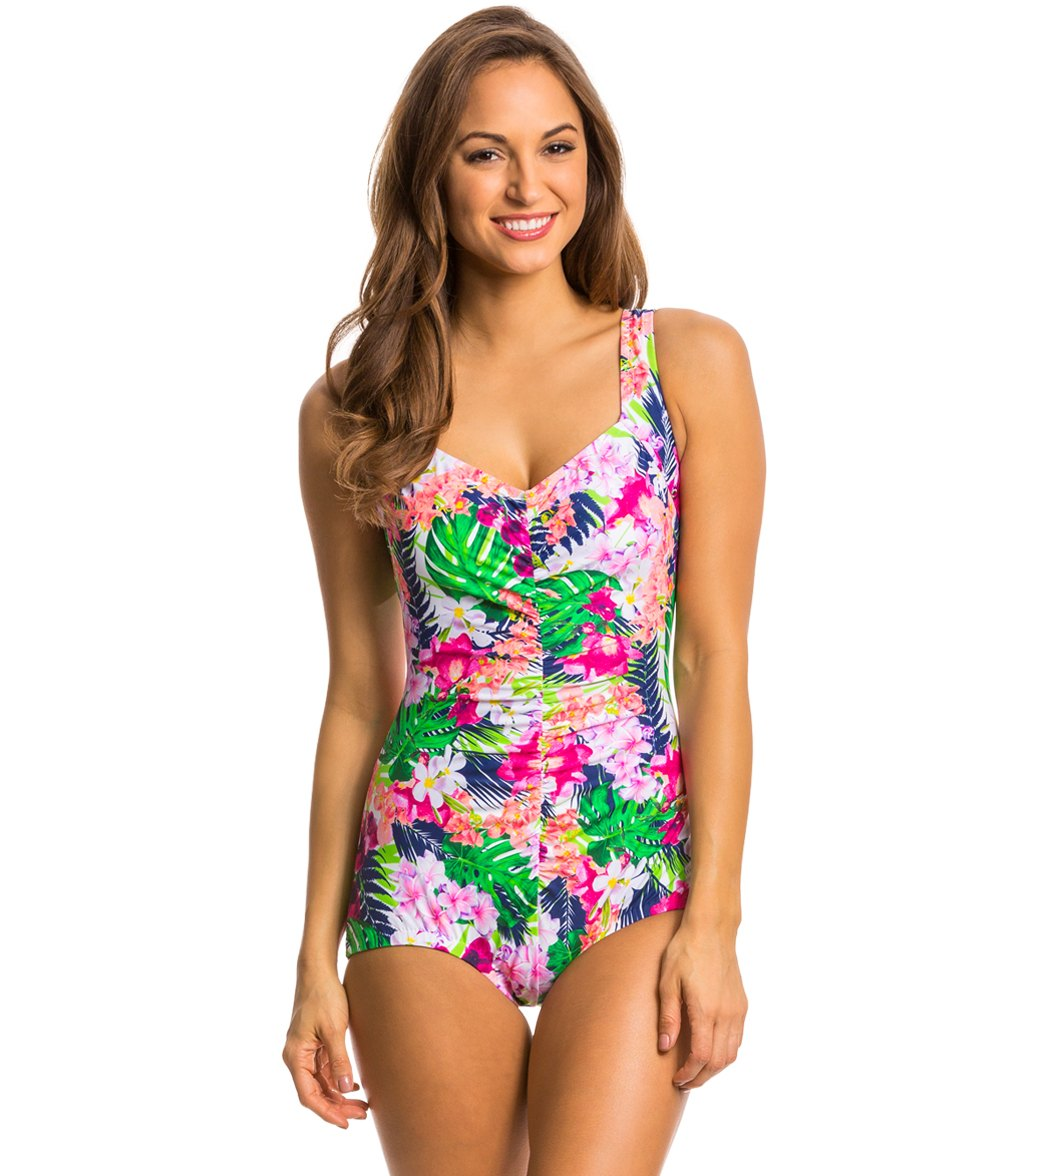 9bc6cd3e2b602 ... Shirred Front Girl Leg One Piece Swimsuit. Play Video. MODEL  MEASUREMENTS